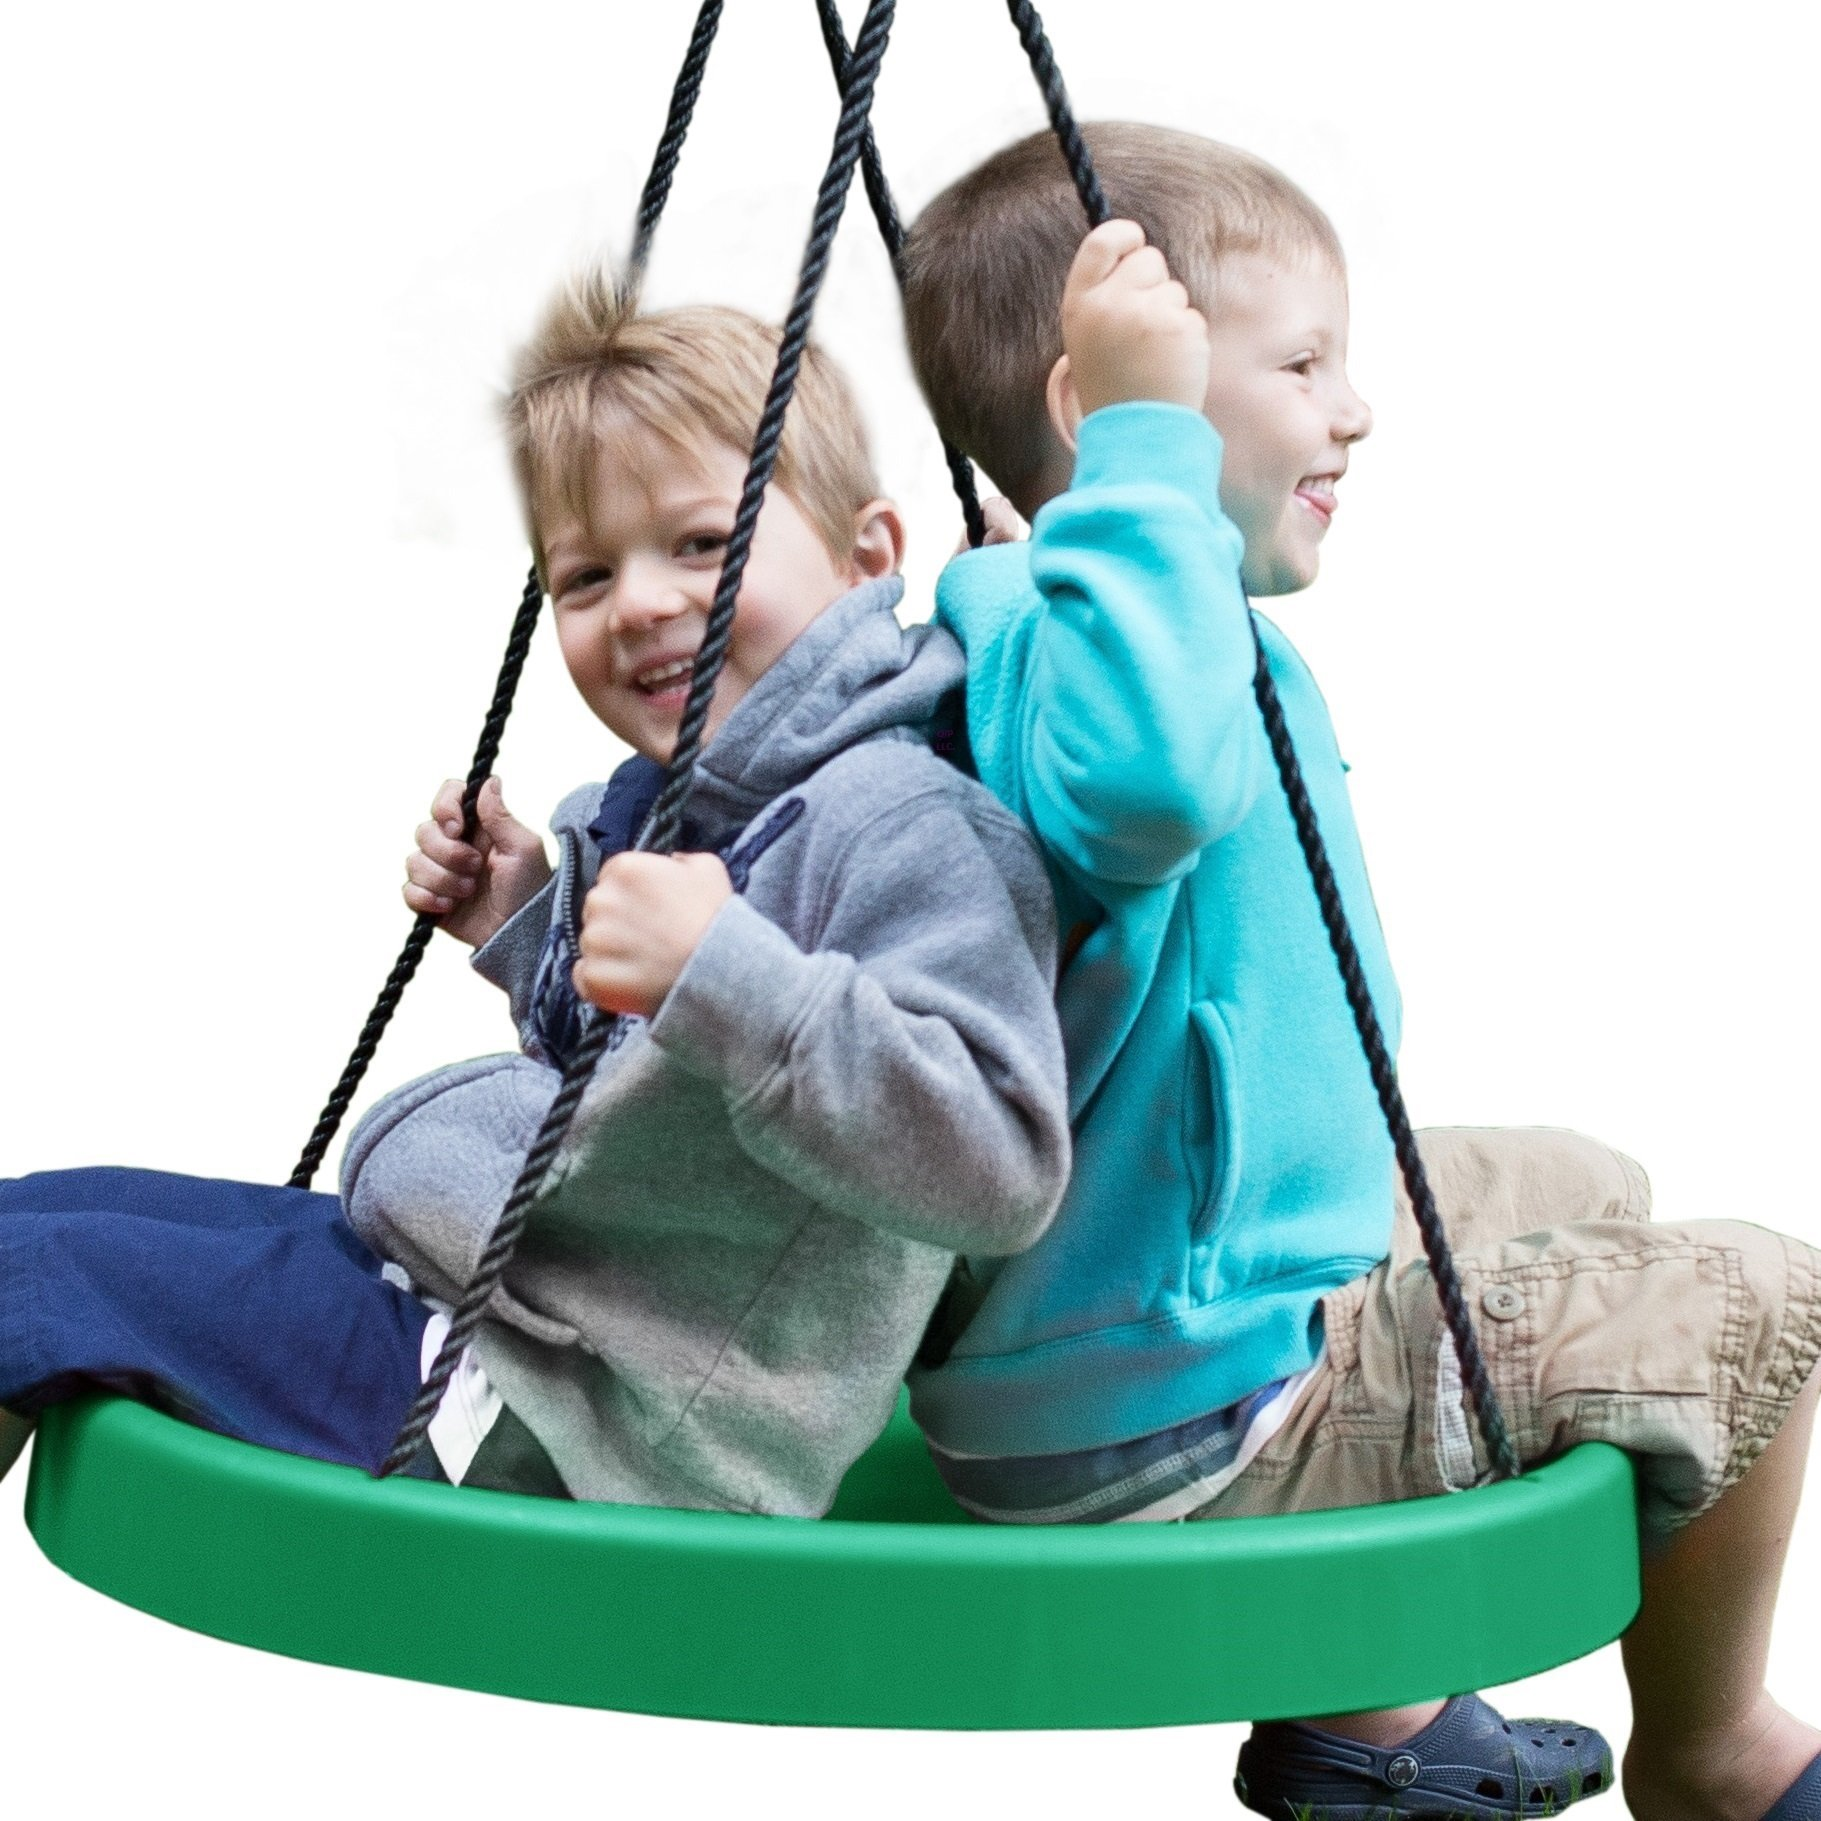 Super Spinner Swing--Fun, Easy to Install on Swing Set or Tree! by Super Spinner